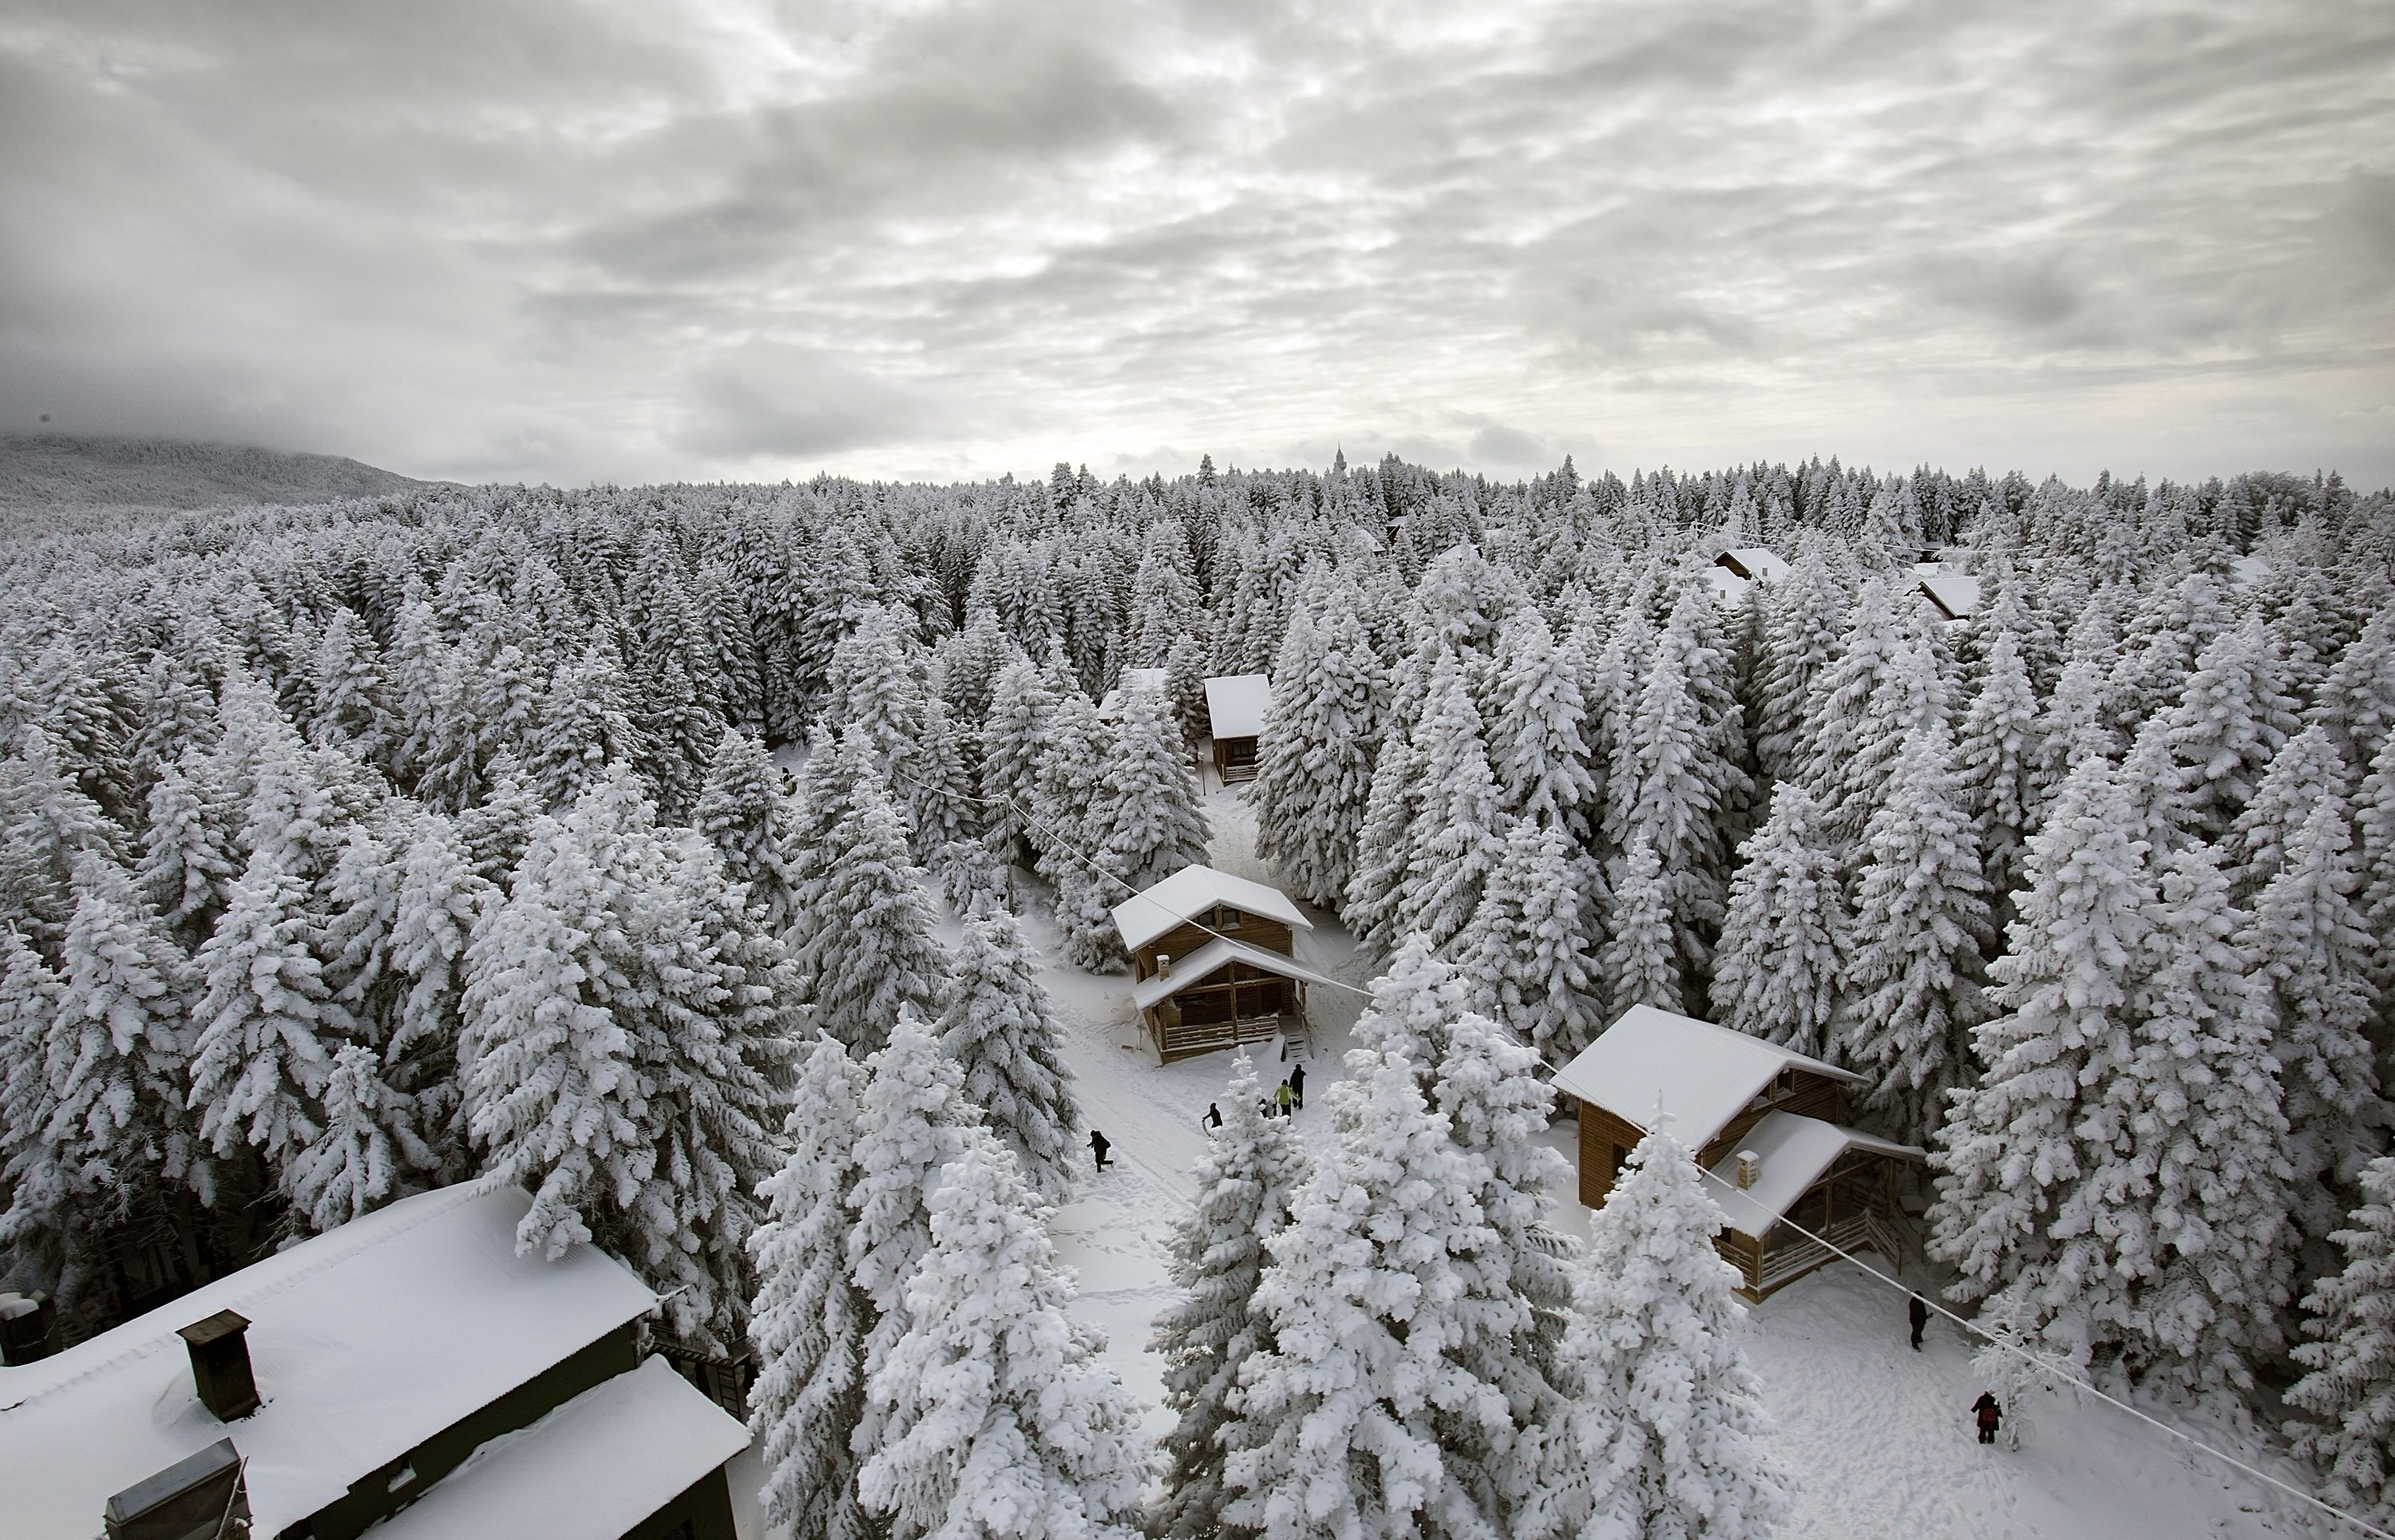 Bursa's Uludağ and mountain lodges have been a favorite for local tourists. (Shutterstock Photo)